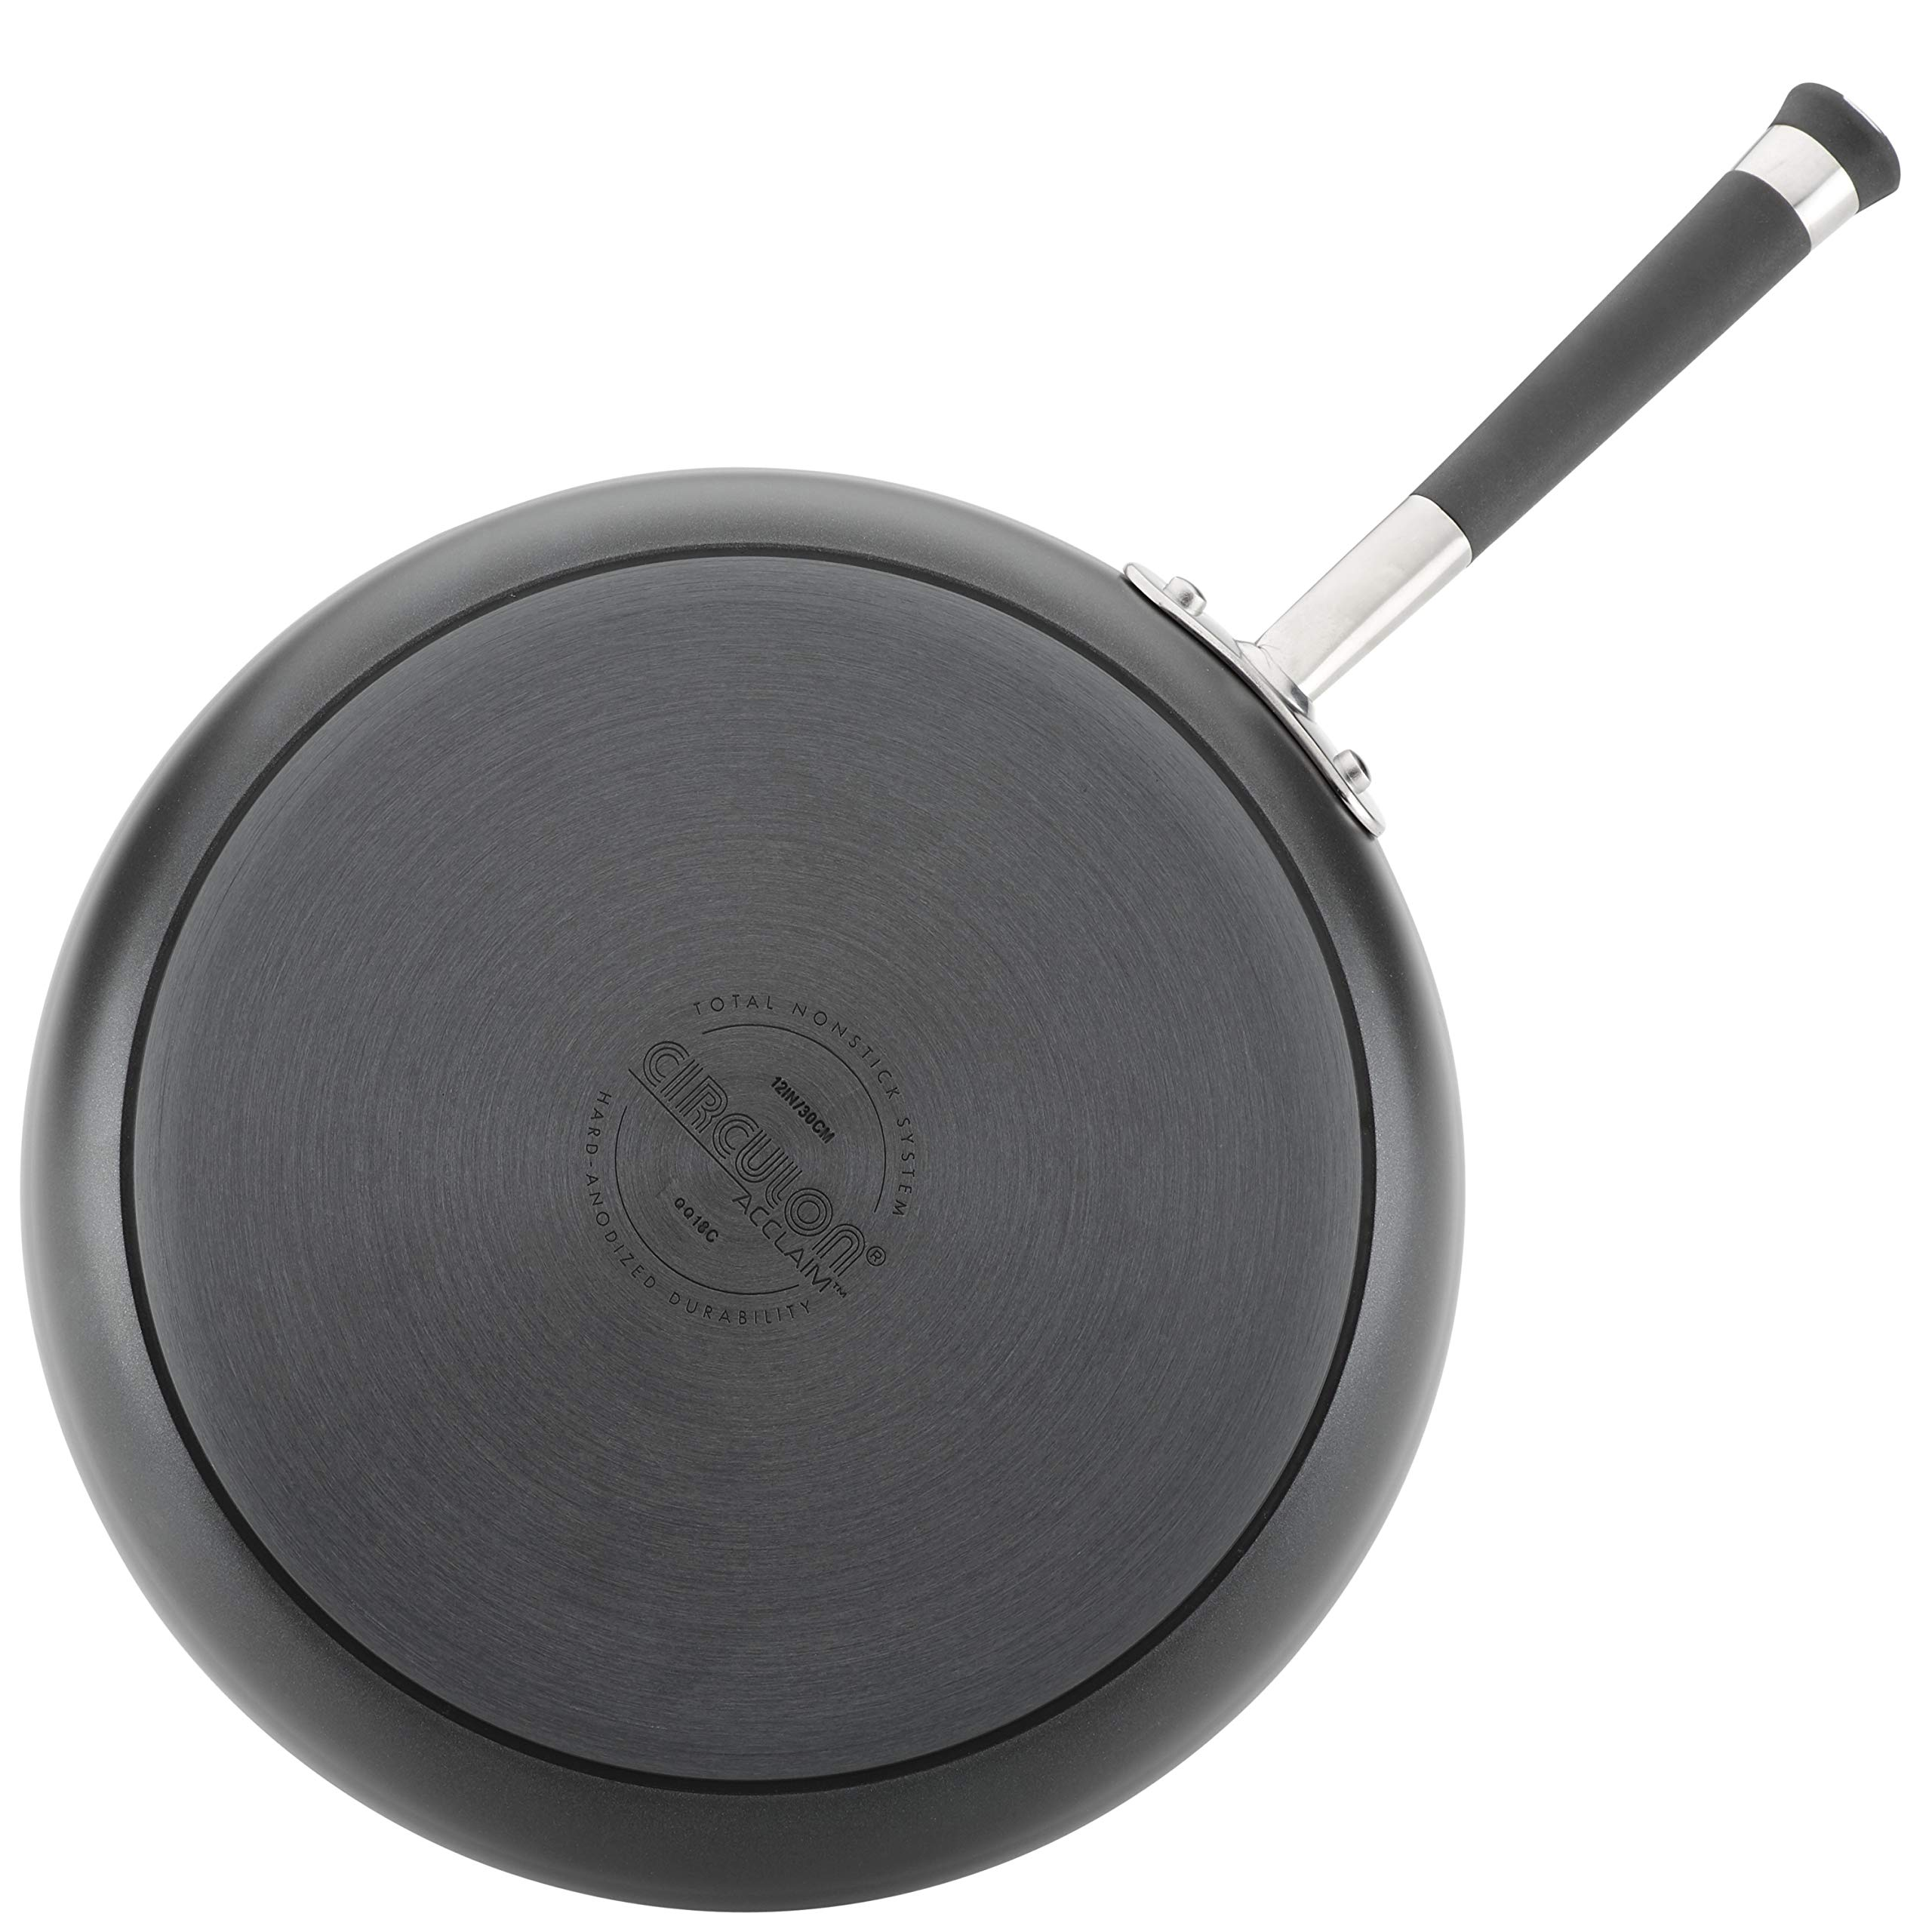 Circulon Acclaim Hard-Anodized Nonstick 12-Inch Covered Deep Skillet, Black by Circulon (Image #2)